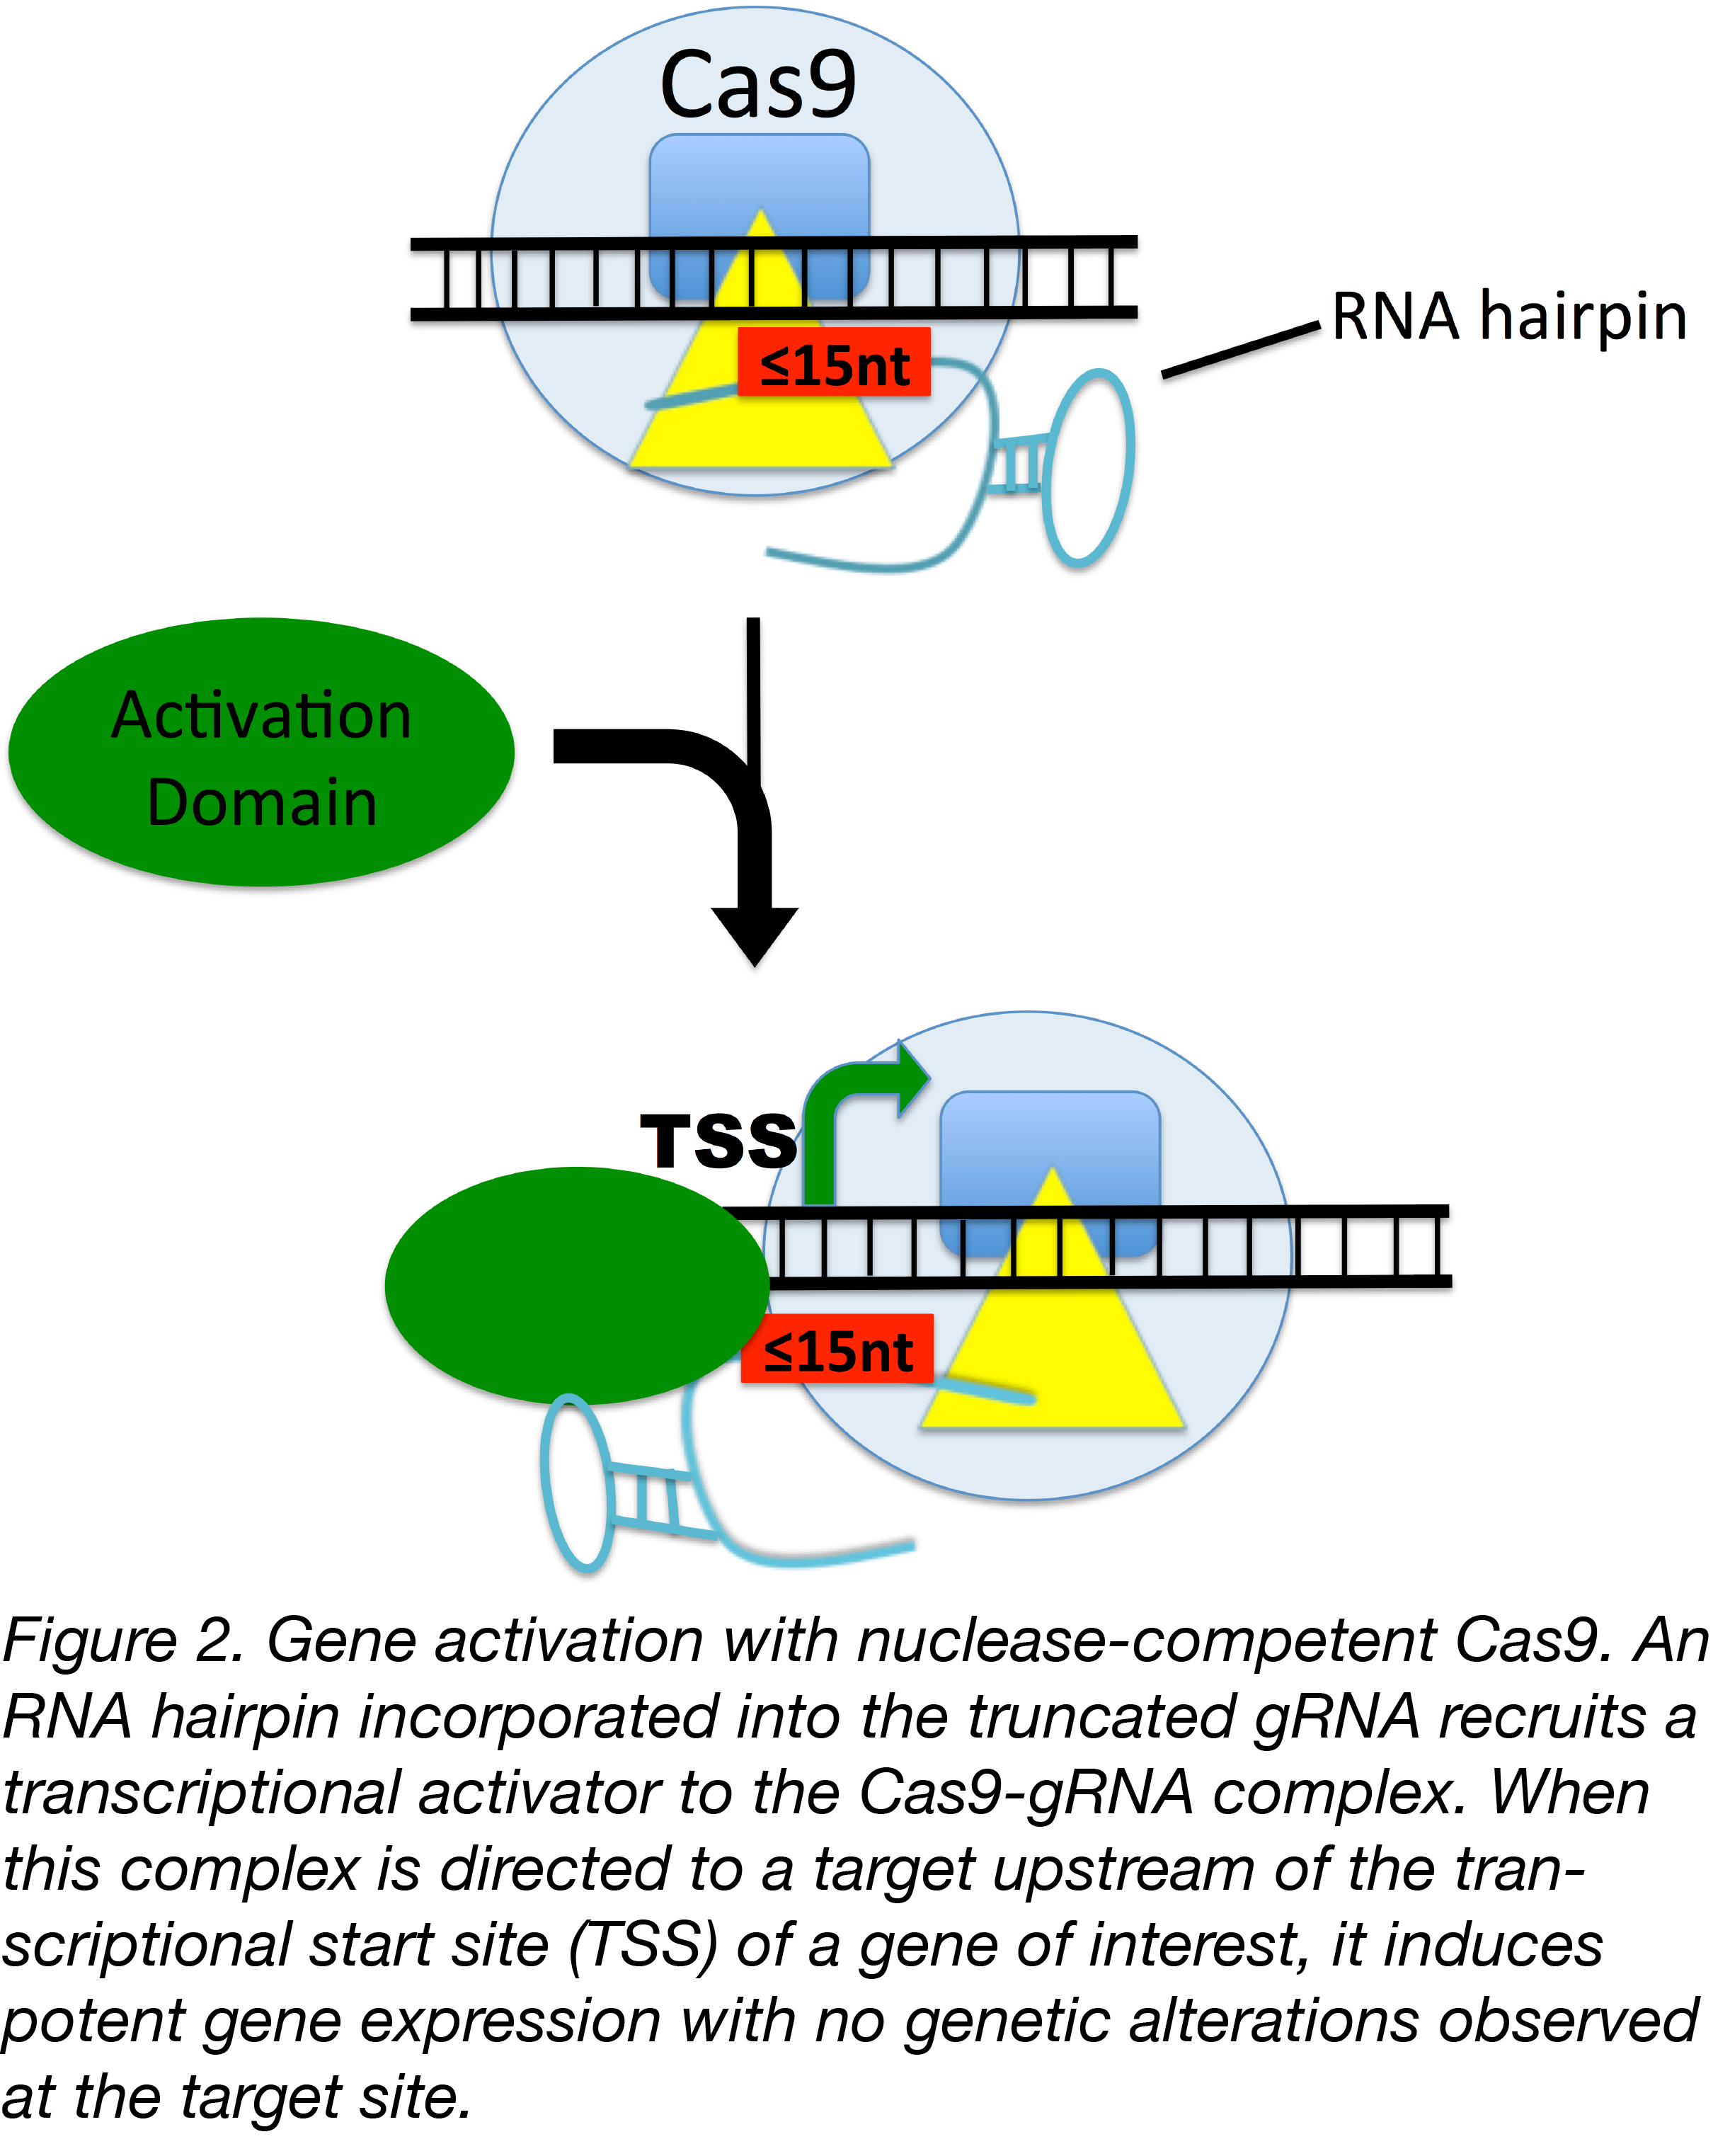 Truncated gRNAs used to Activate Gene Expression